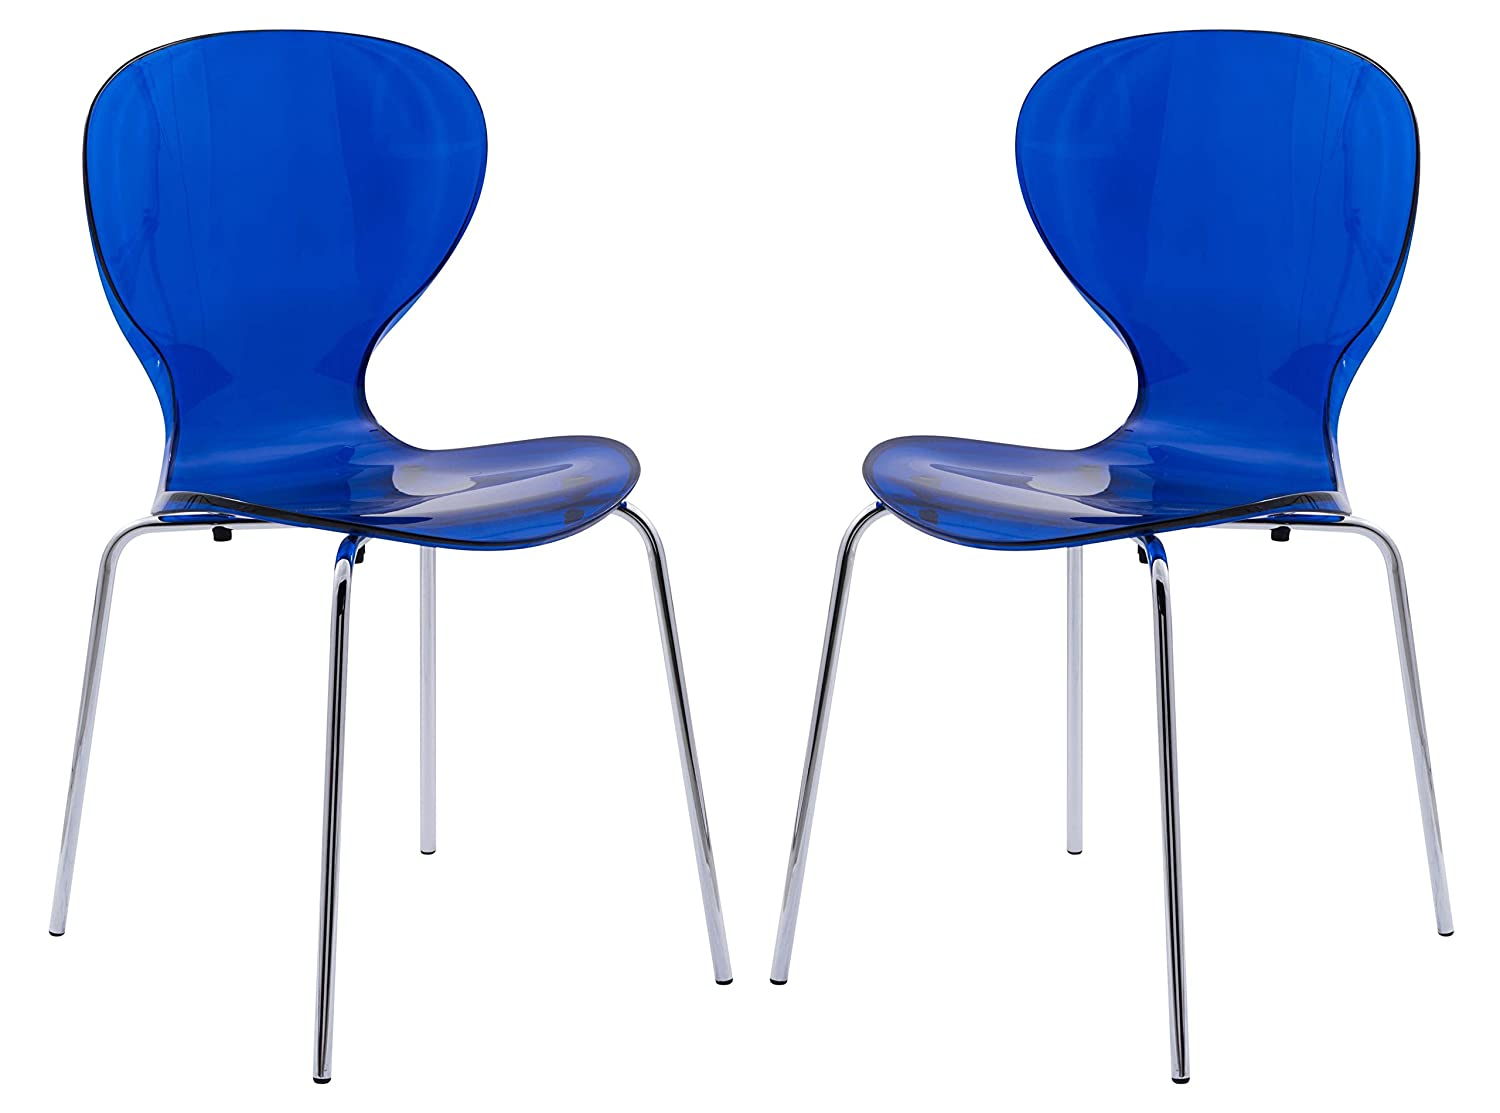 LeisureMod Carson Mid-Century Dining Side Chair, Set of 2 Transparent Blue